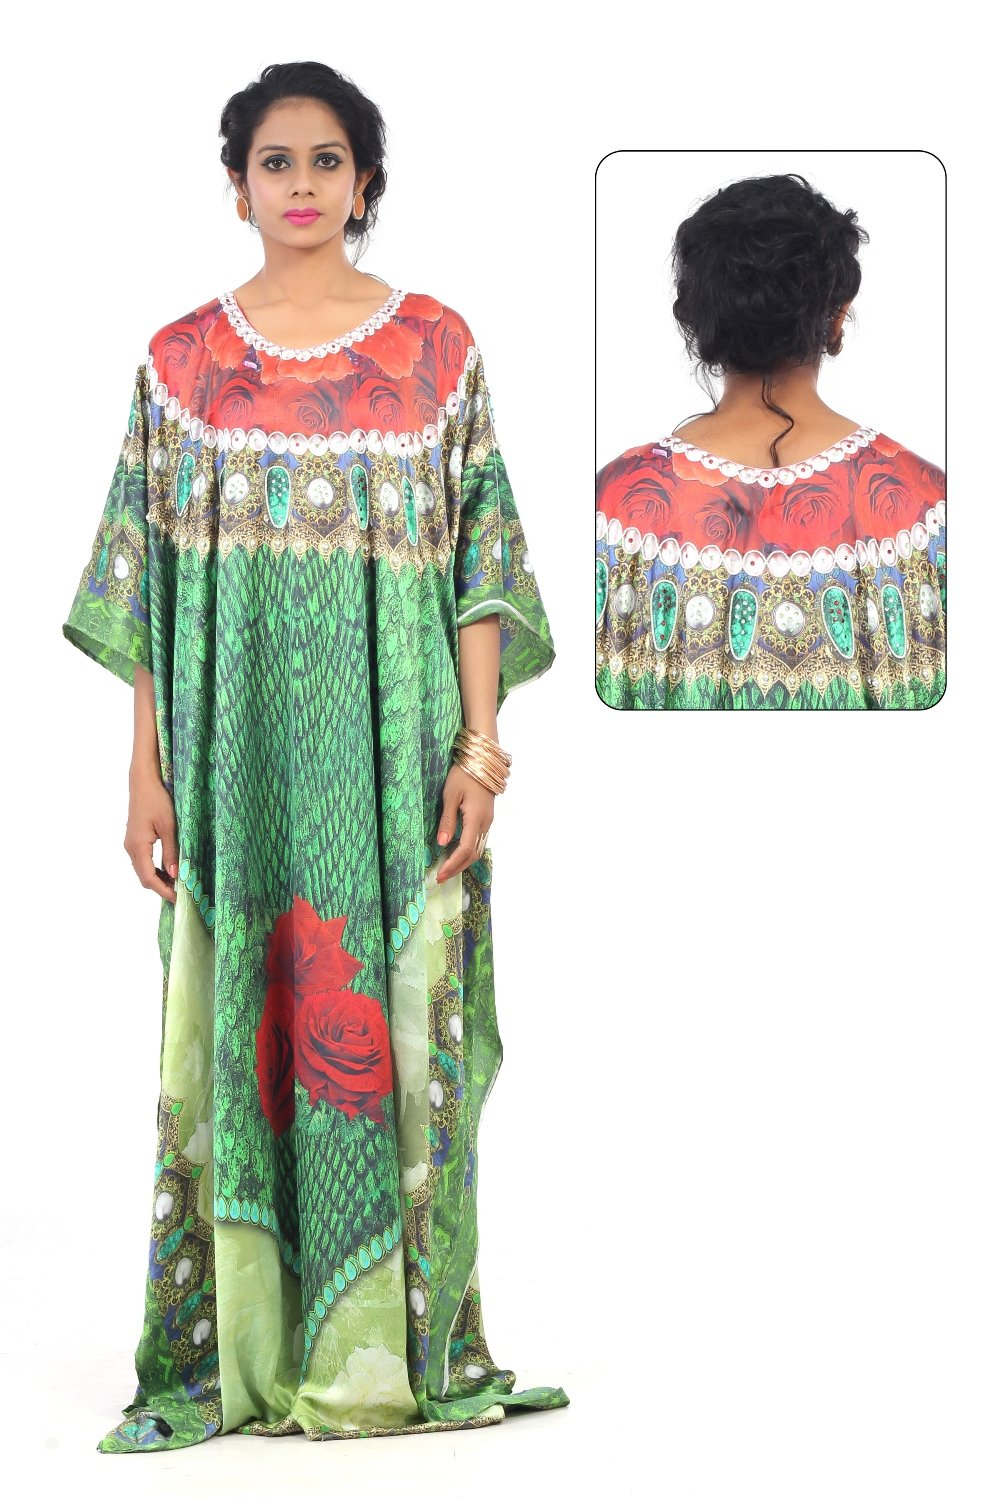 designer kaftans and tunics